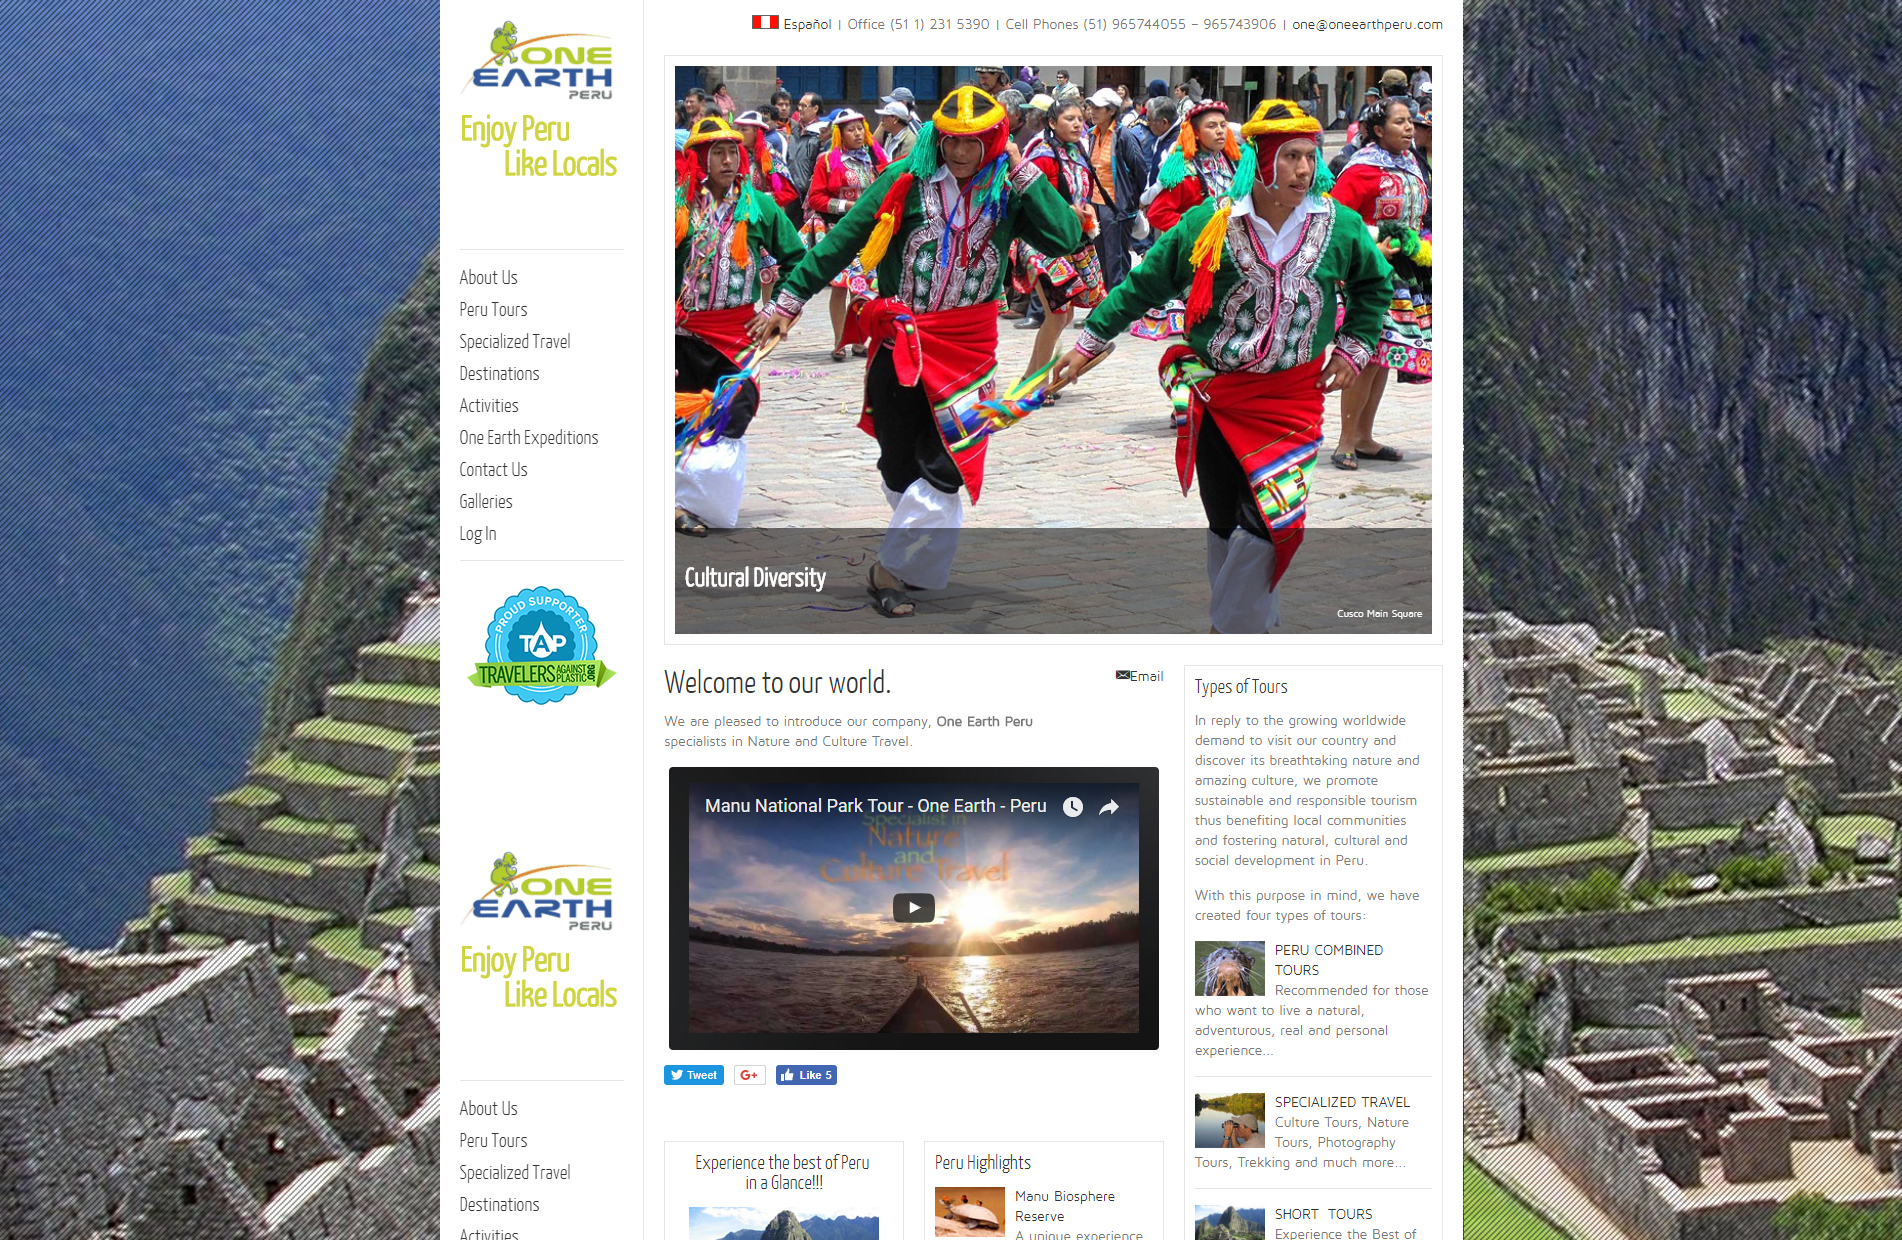 One Earth Peru Tours, Nature and Culture Travel, and Expeditions